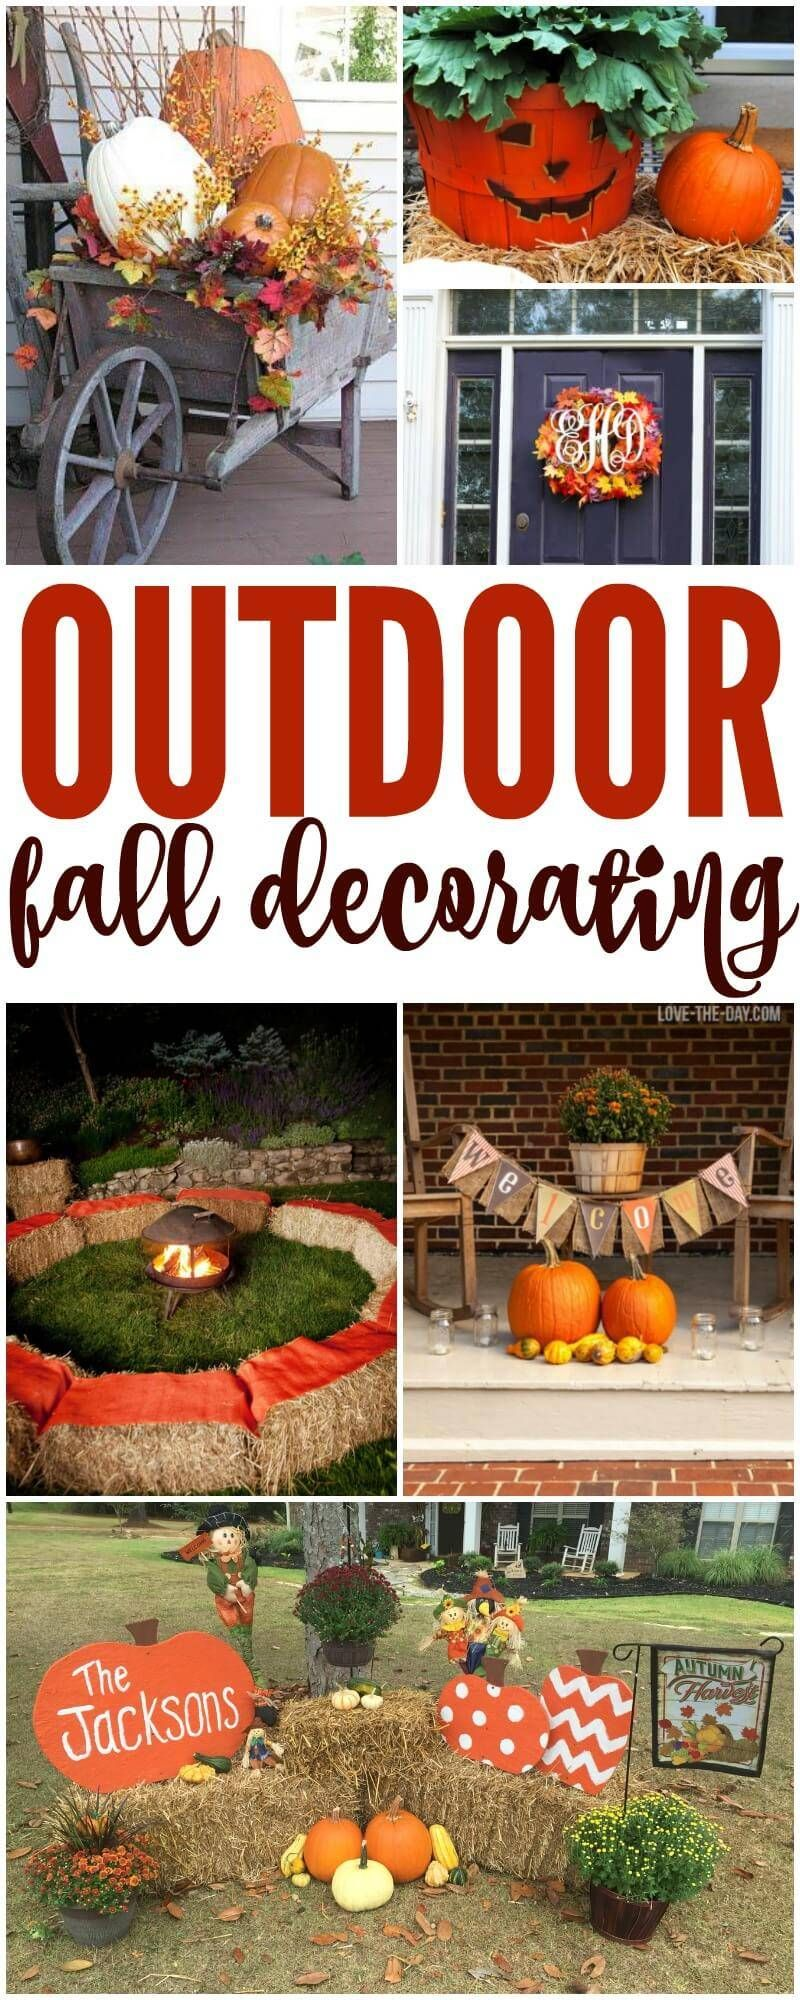 Outdoor Fall Decorations! Easy DIY Outside Ideas for decorating